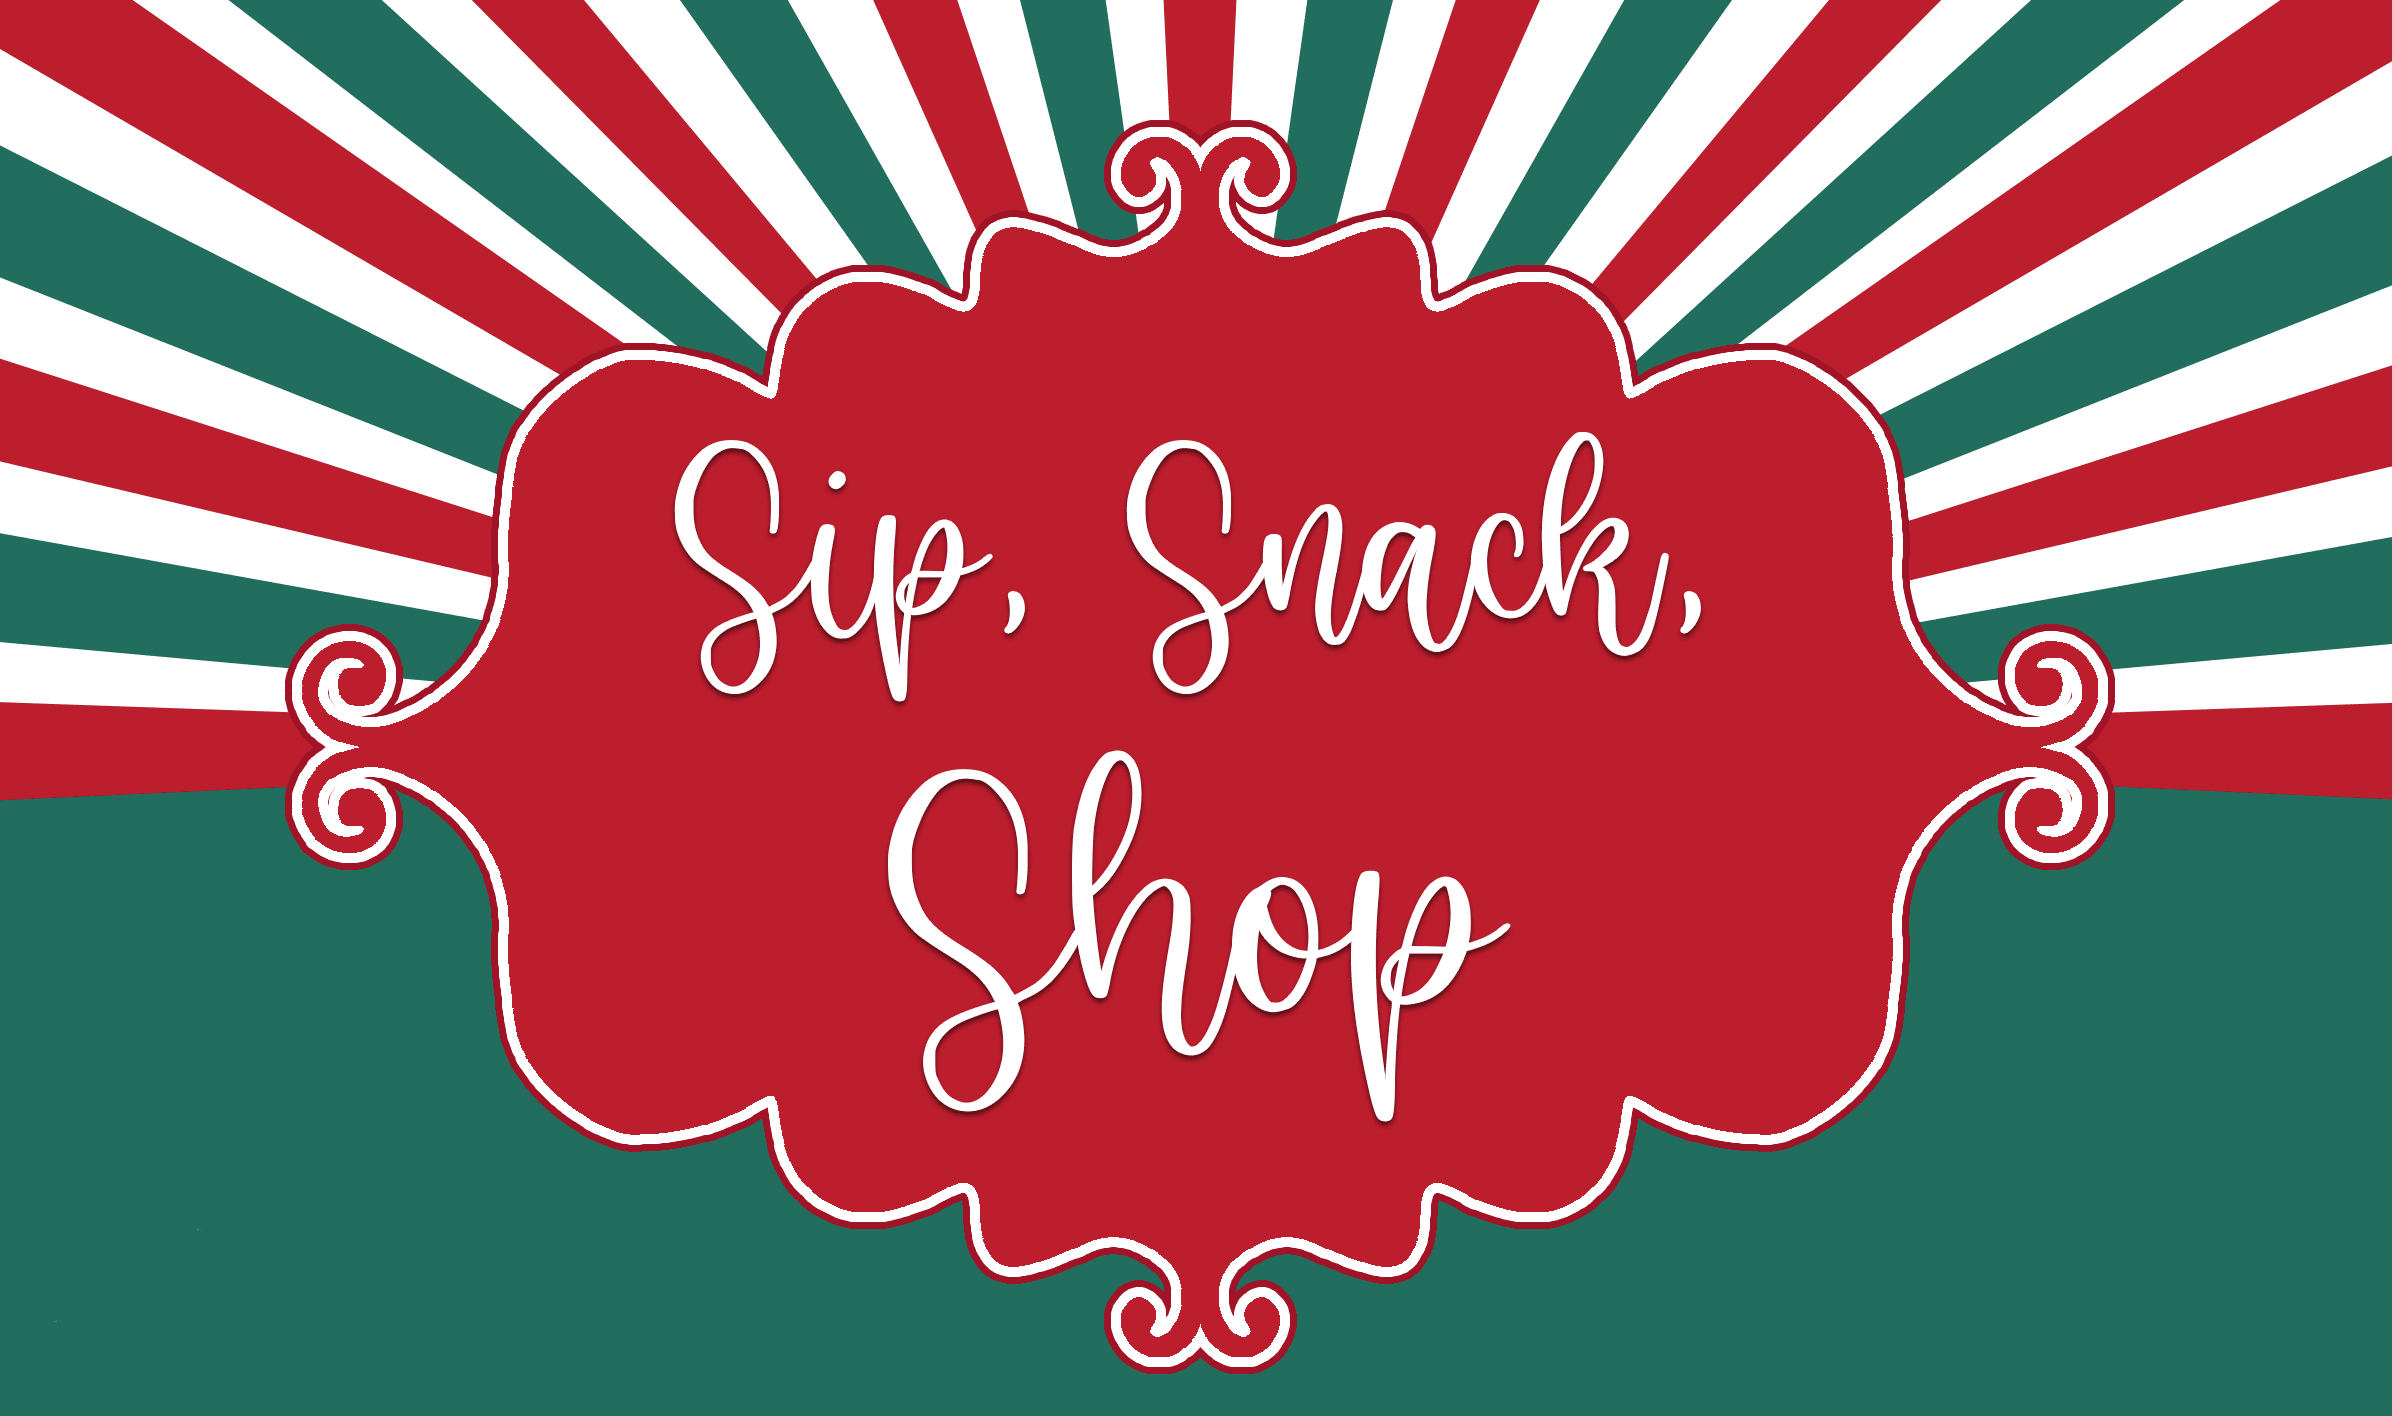 Sip, Snack, Shop Logo